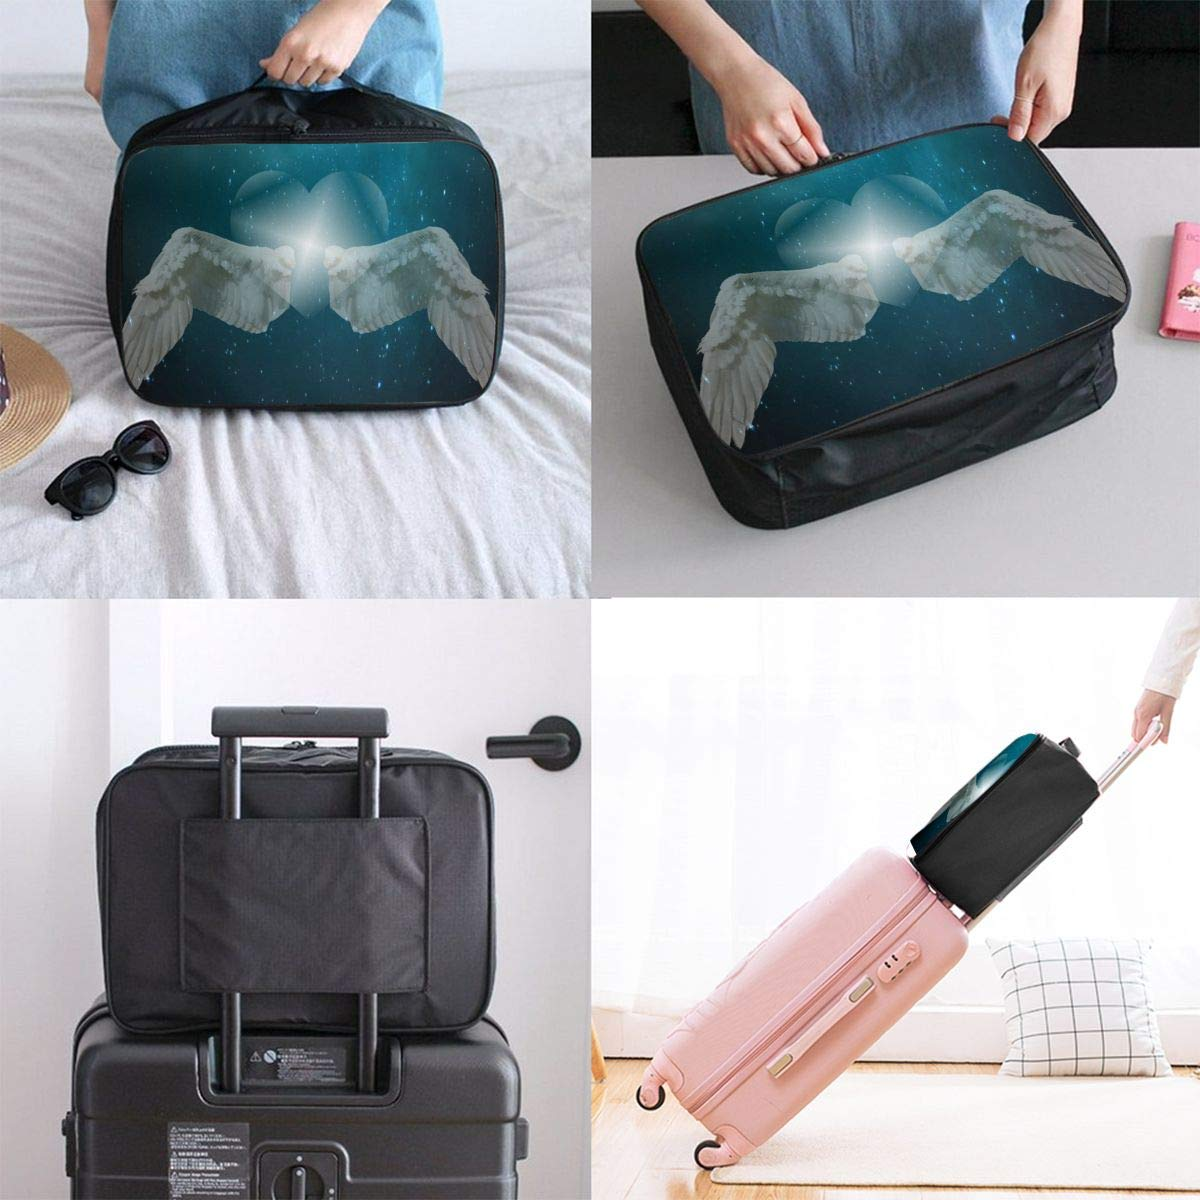 Love Wing Angel Sky Star Travel Lightweight Waterproof Foldable Storage Carry Luggage Large Capacity Portable Luggage Bag Duffel Bag